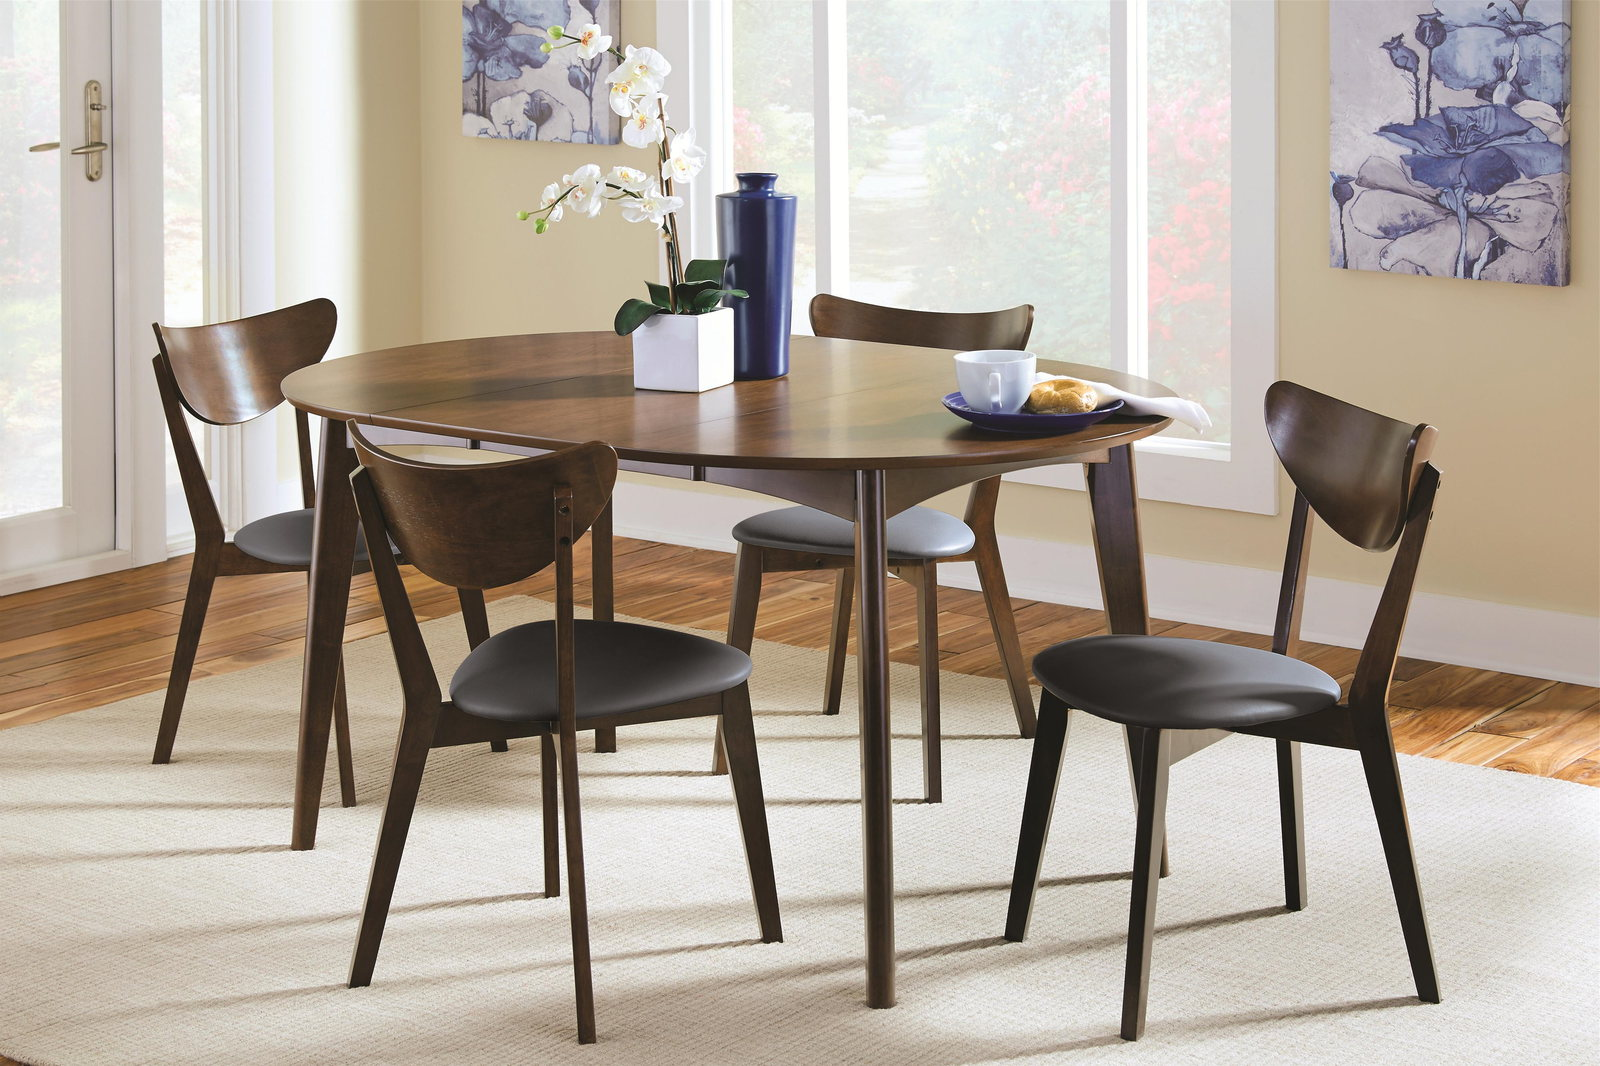 Modern Dining Room Furniture Coaster Malone Mid Century 6 Piece Modern Dining Room Set In Dark Walnut